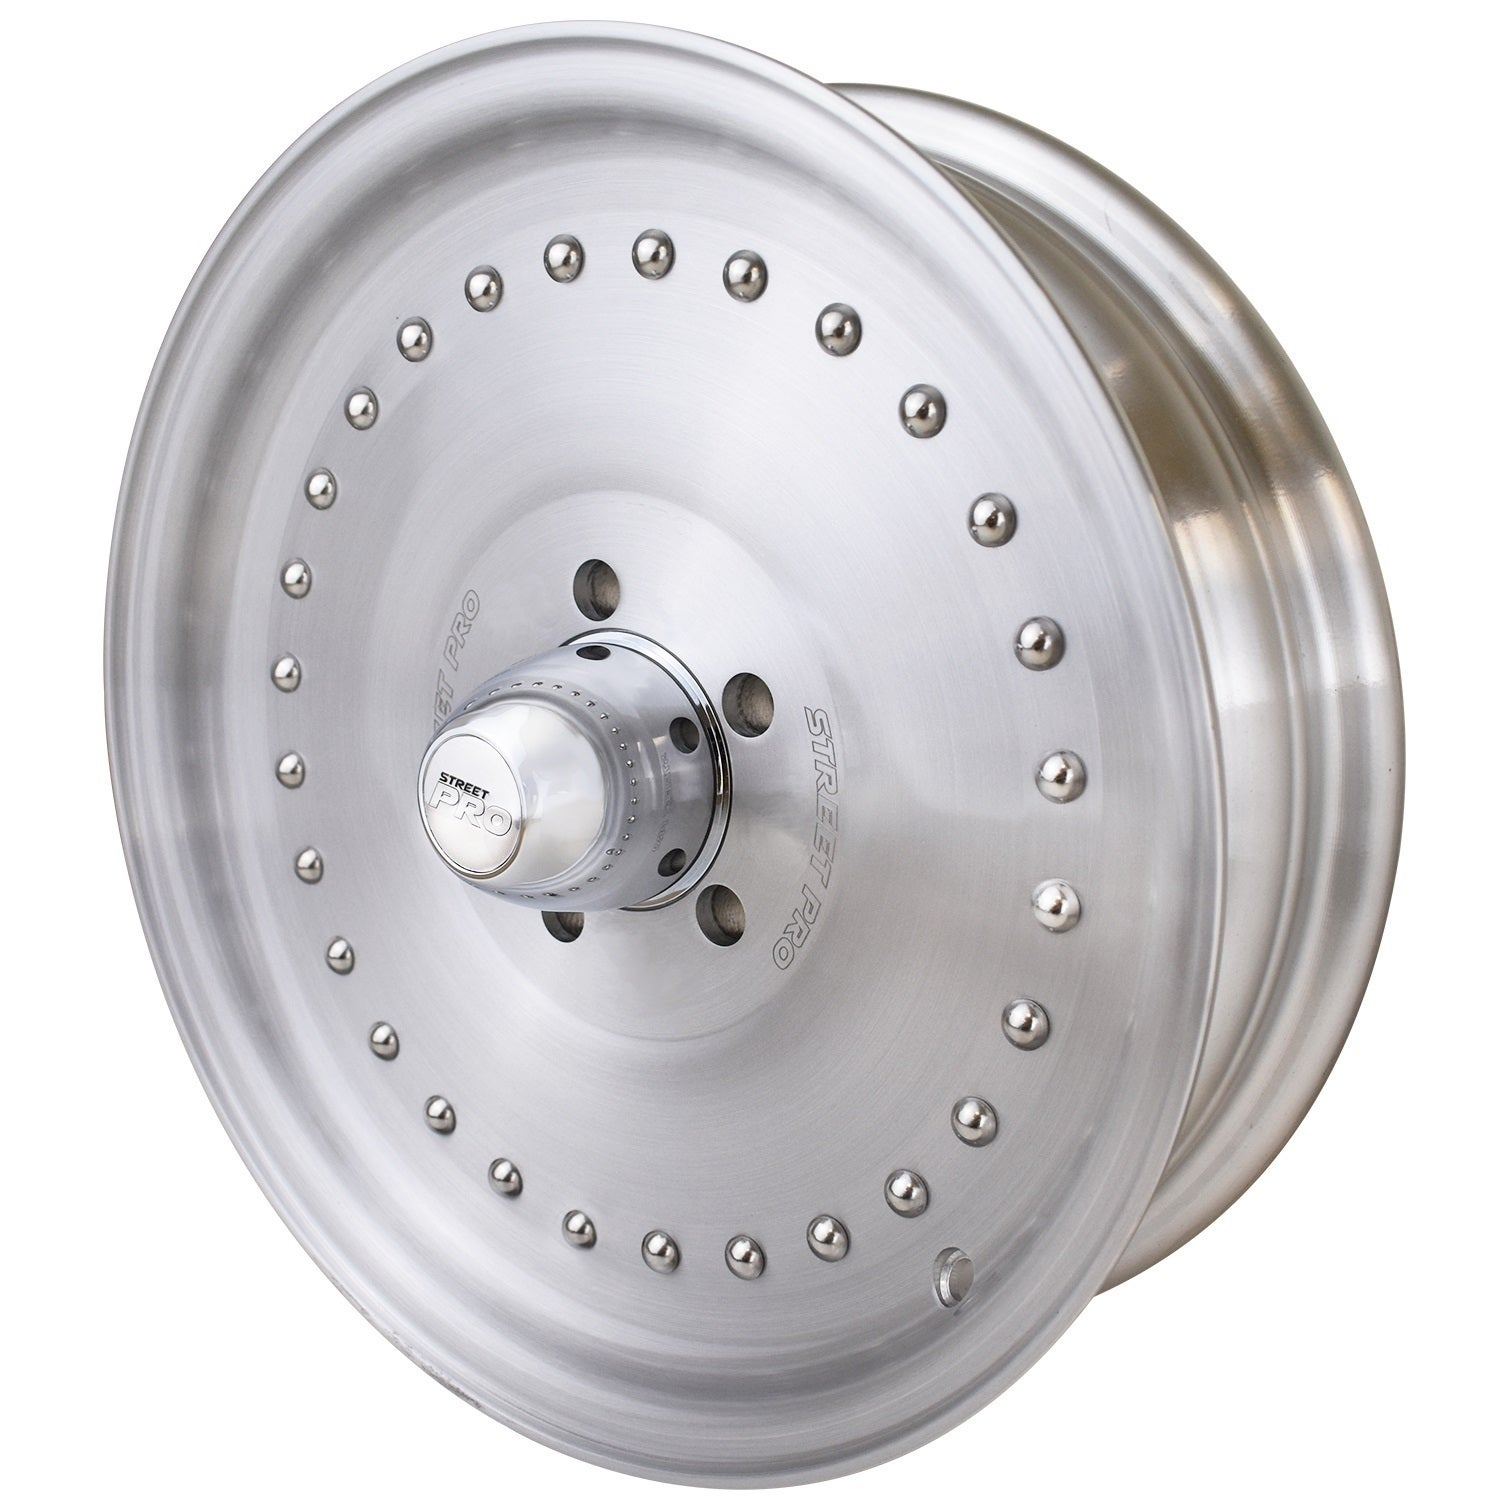 Street Pro 007 Series Wheel 17x4.5' For Holden Chevrolet 5 x 4.75' Bolt Circle -26) 1-3/4' Back Space